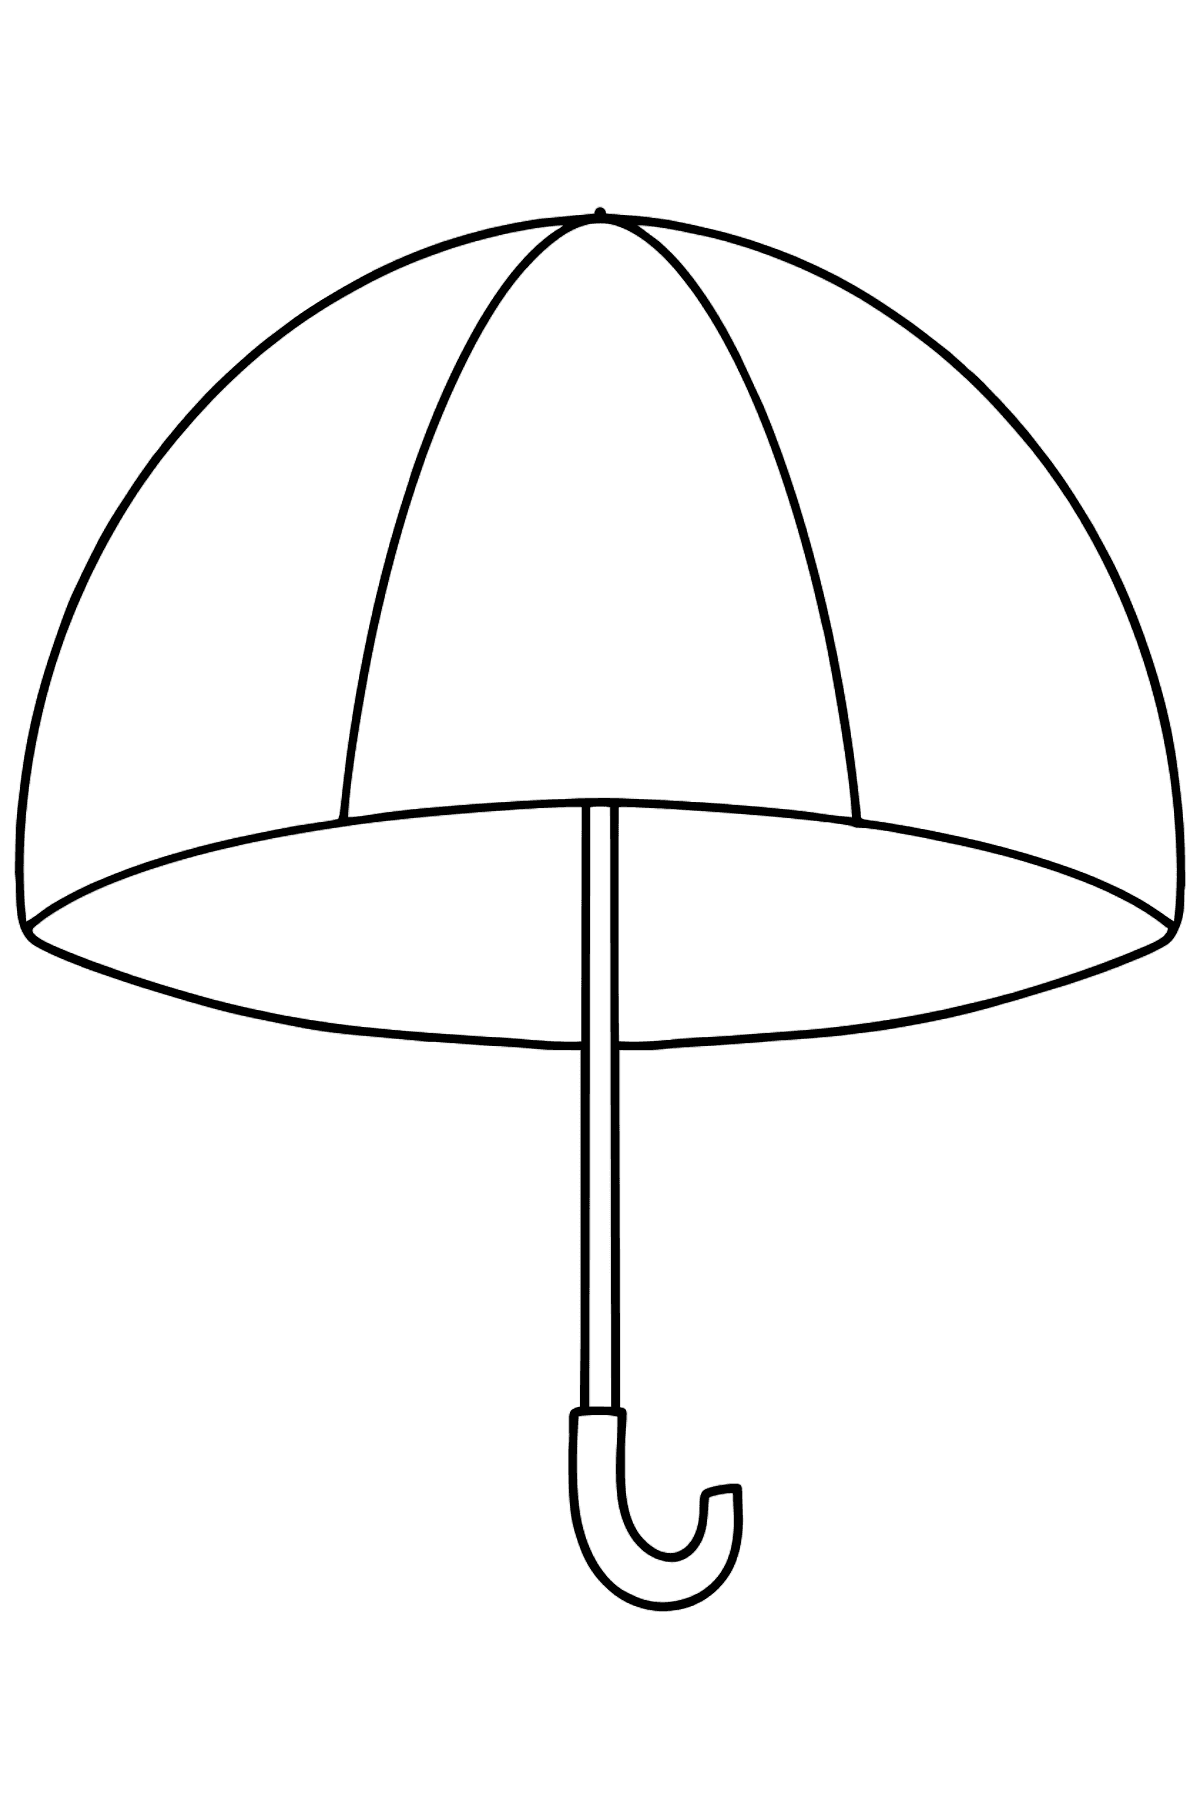 Umbrella coloring page - Coloring Pages for Kids